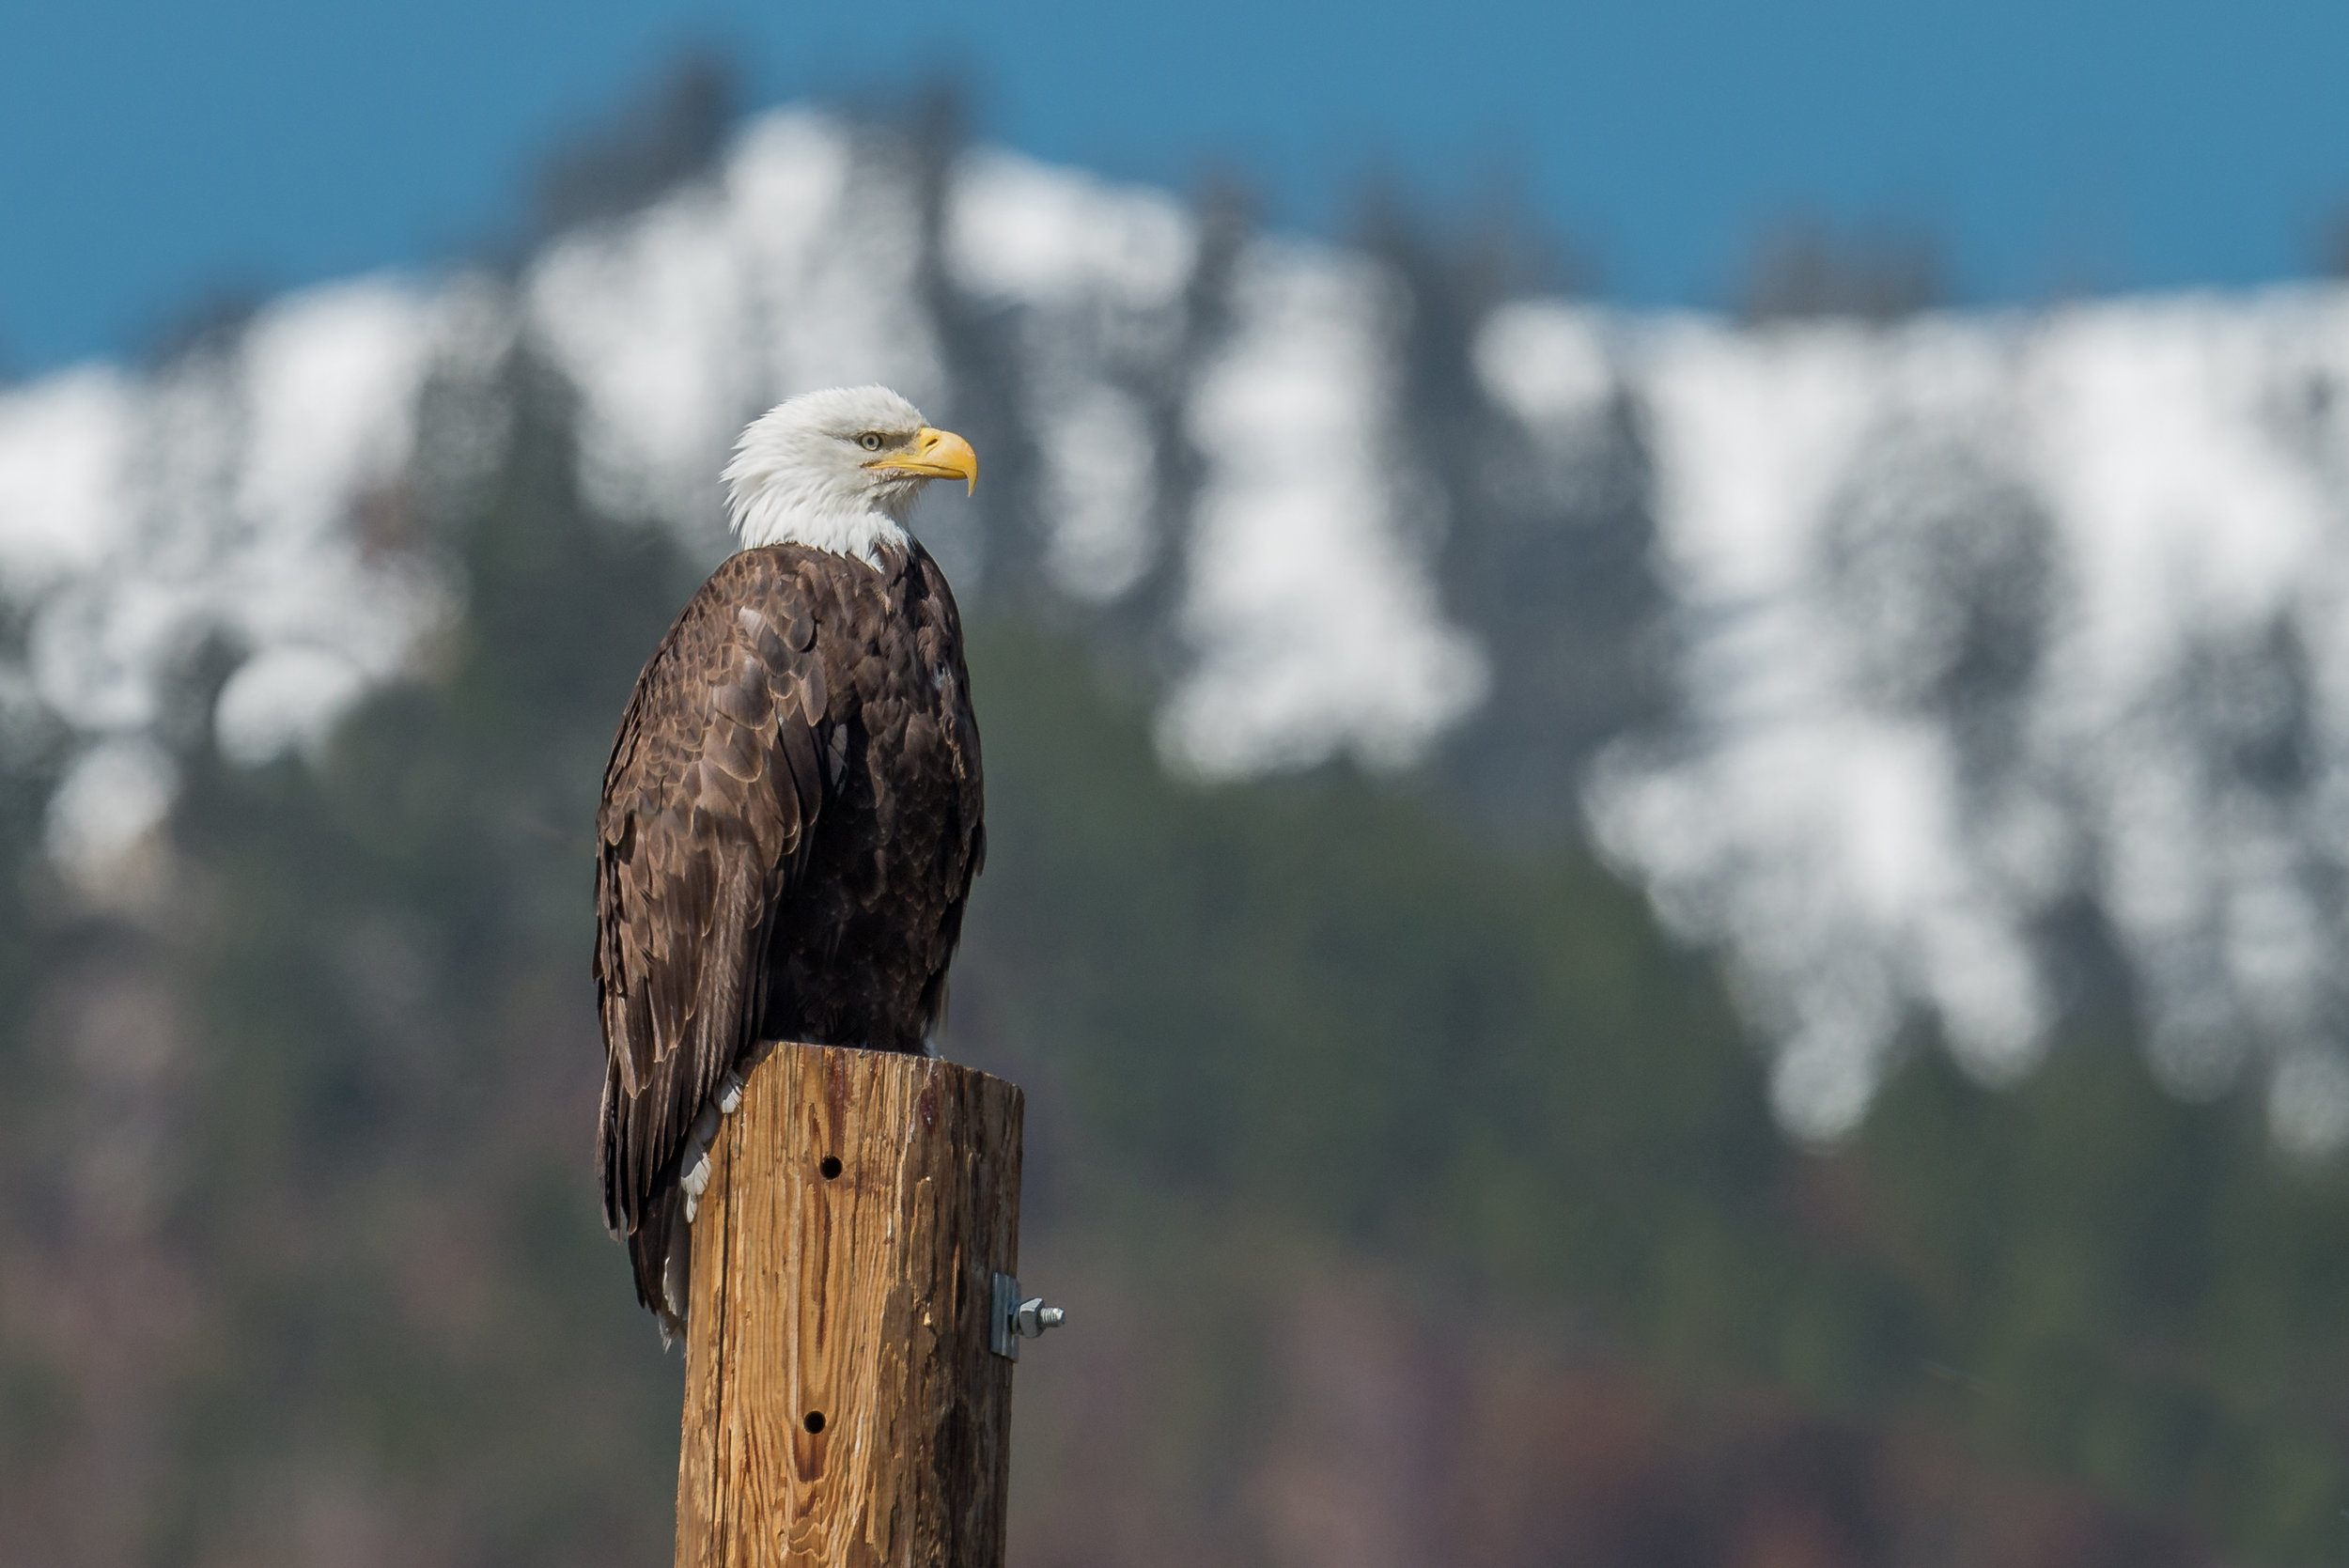 Featured Photo: Bald Eagle (Haliaeetus leucocephalus), Washoe Valley, WAS (NV)  EQ: D800, 500mm f/4 Taken: 4-20-2018 at 10:46  Settings: 500mm, 1/1250s, f/6.3, ISO250, 1/3EV Conditions: sunny